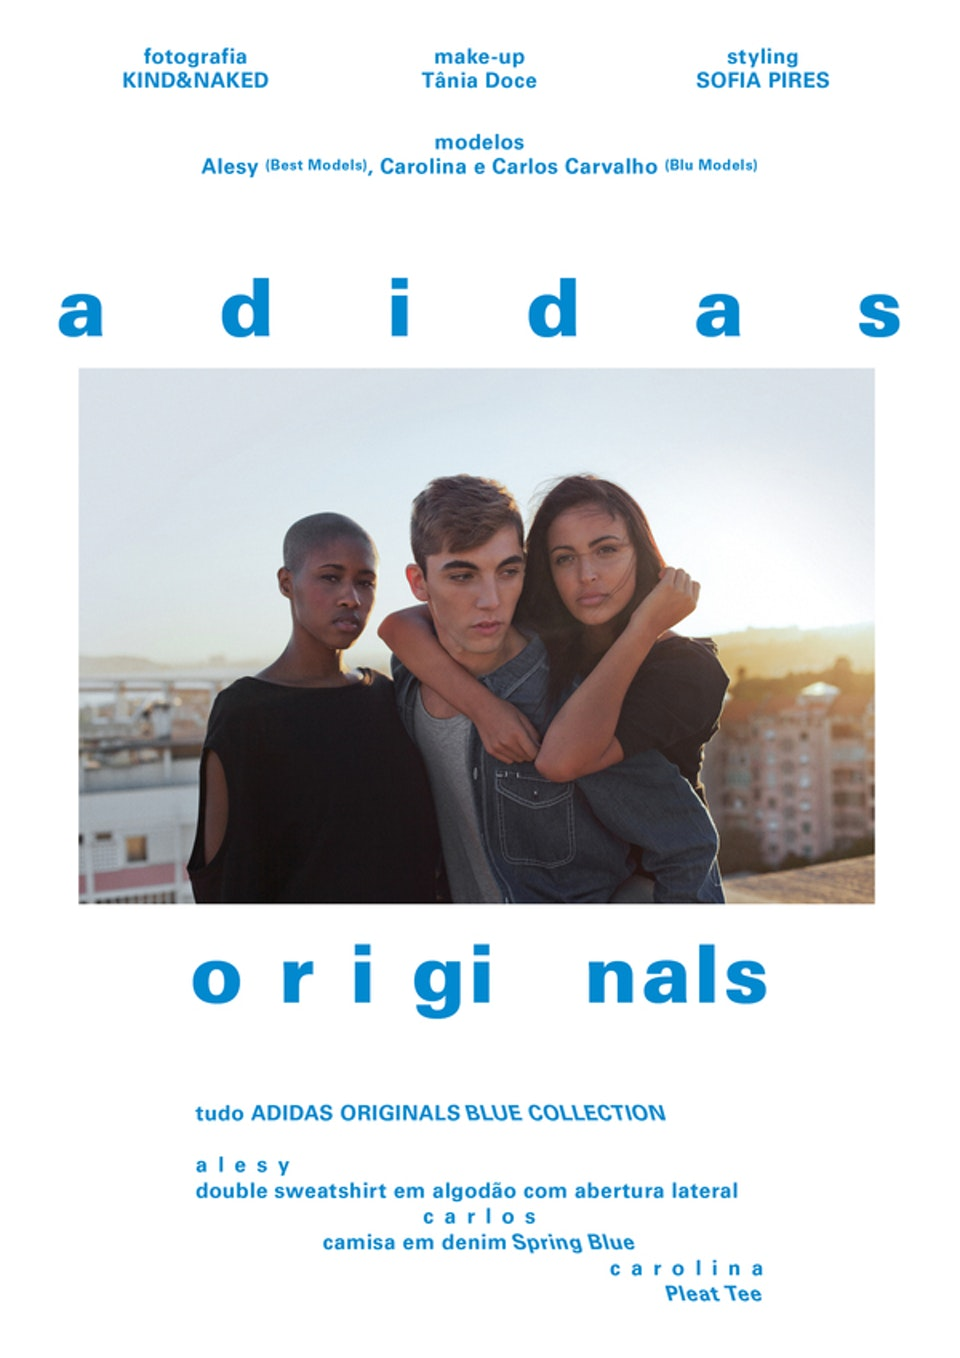 Adidas - Originals Blue Collection for Park Mag 56b625fda42564739ae42649fef2568d